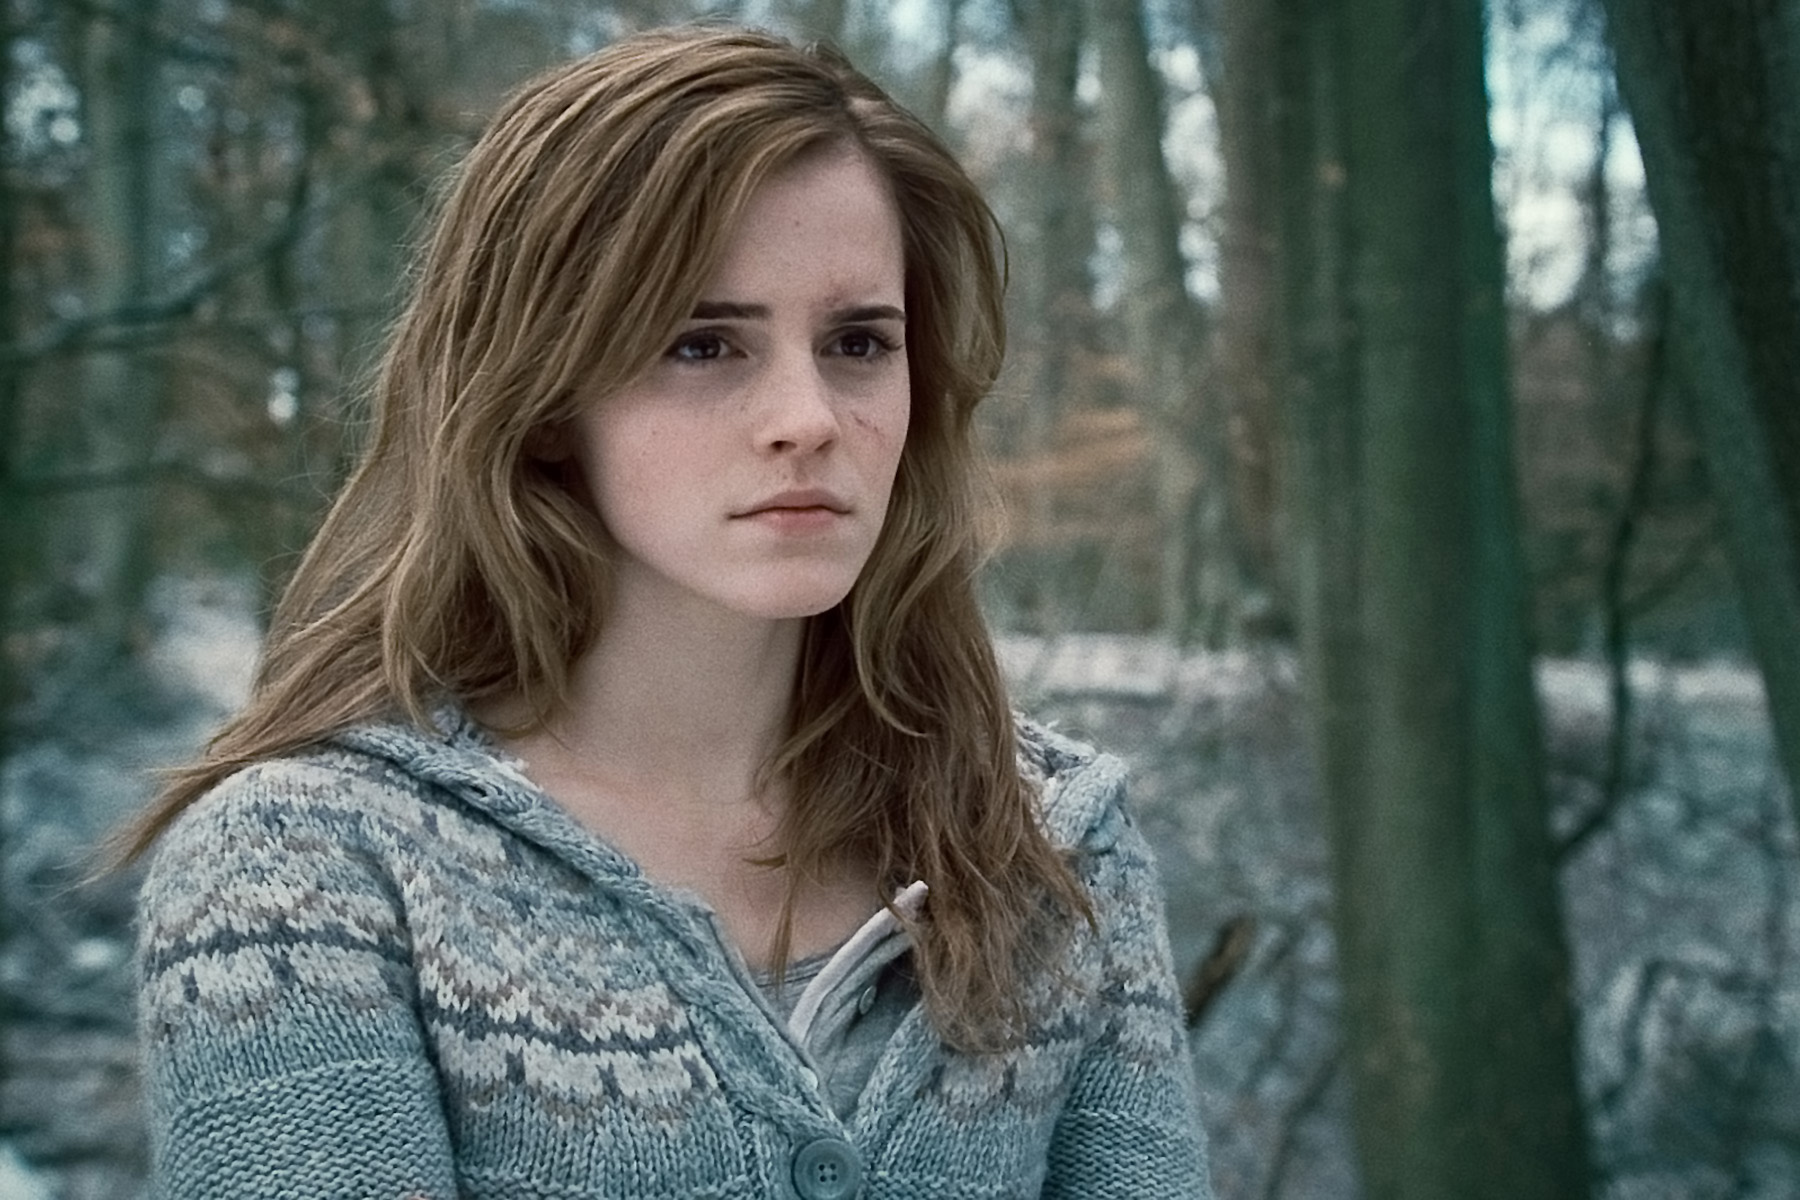 sayou images emma watson hd wallpaper and background photos (30568290)